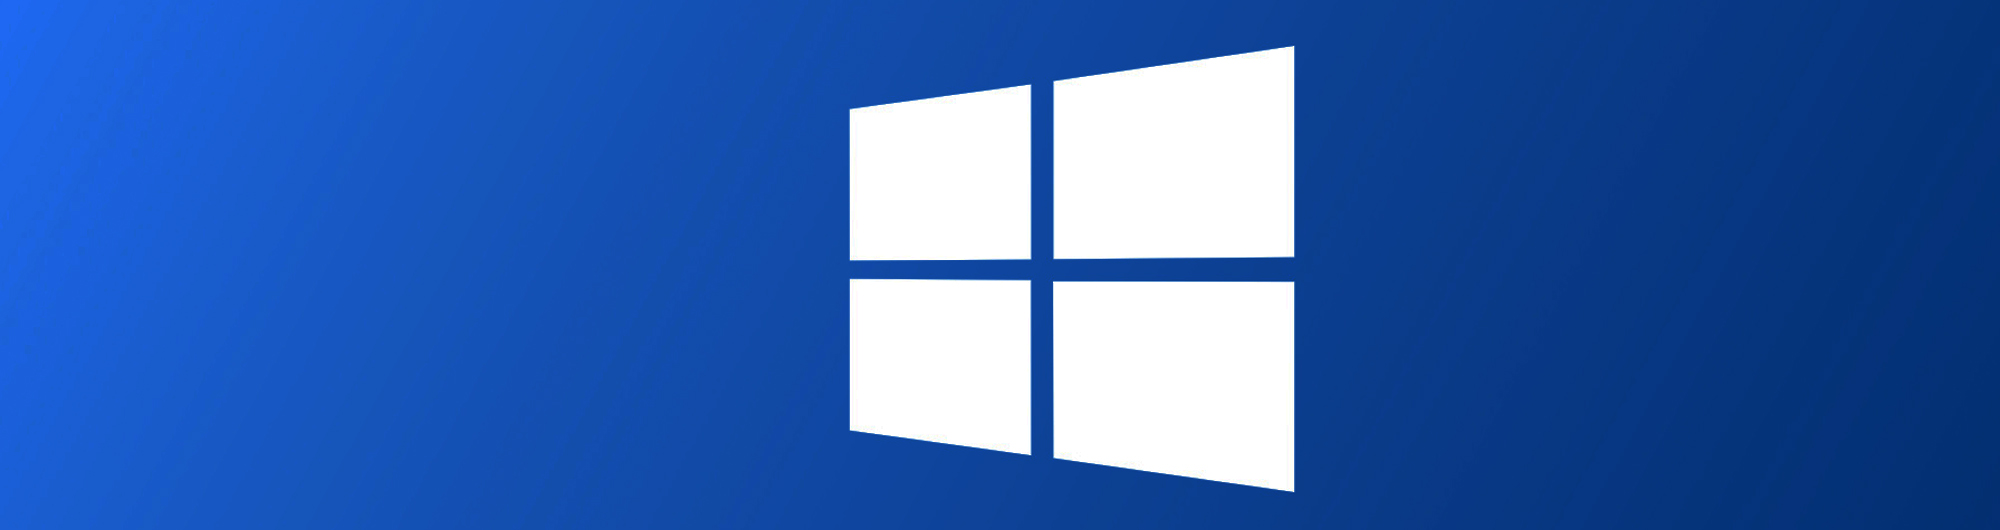 Windows 8.1 Review and Critique